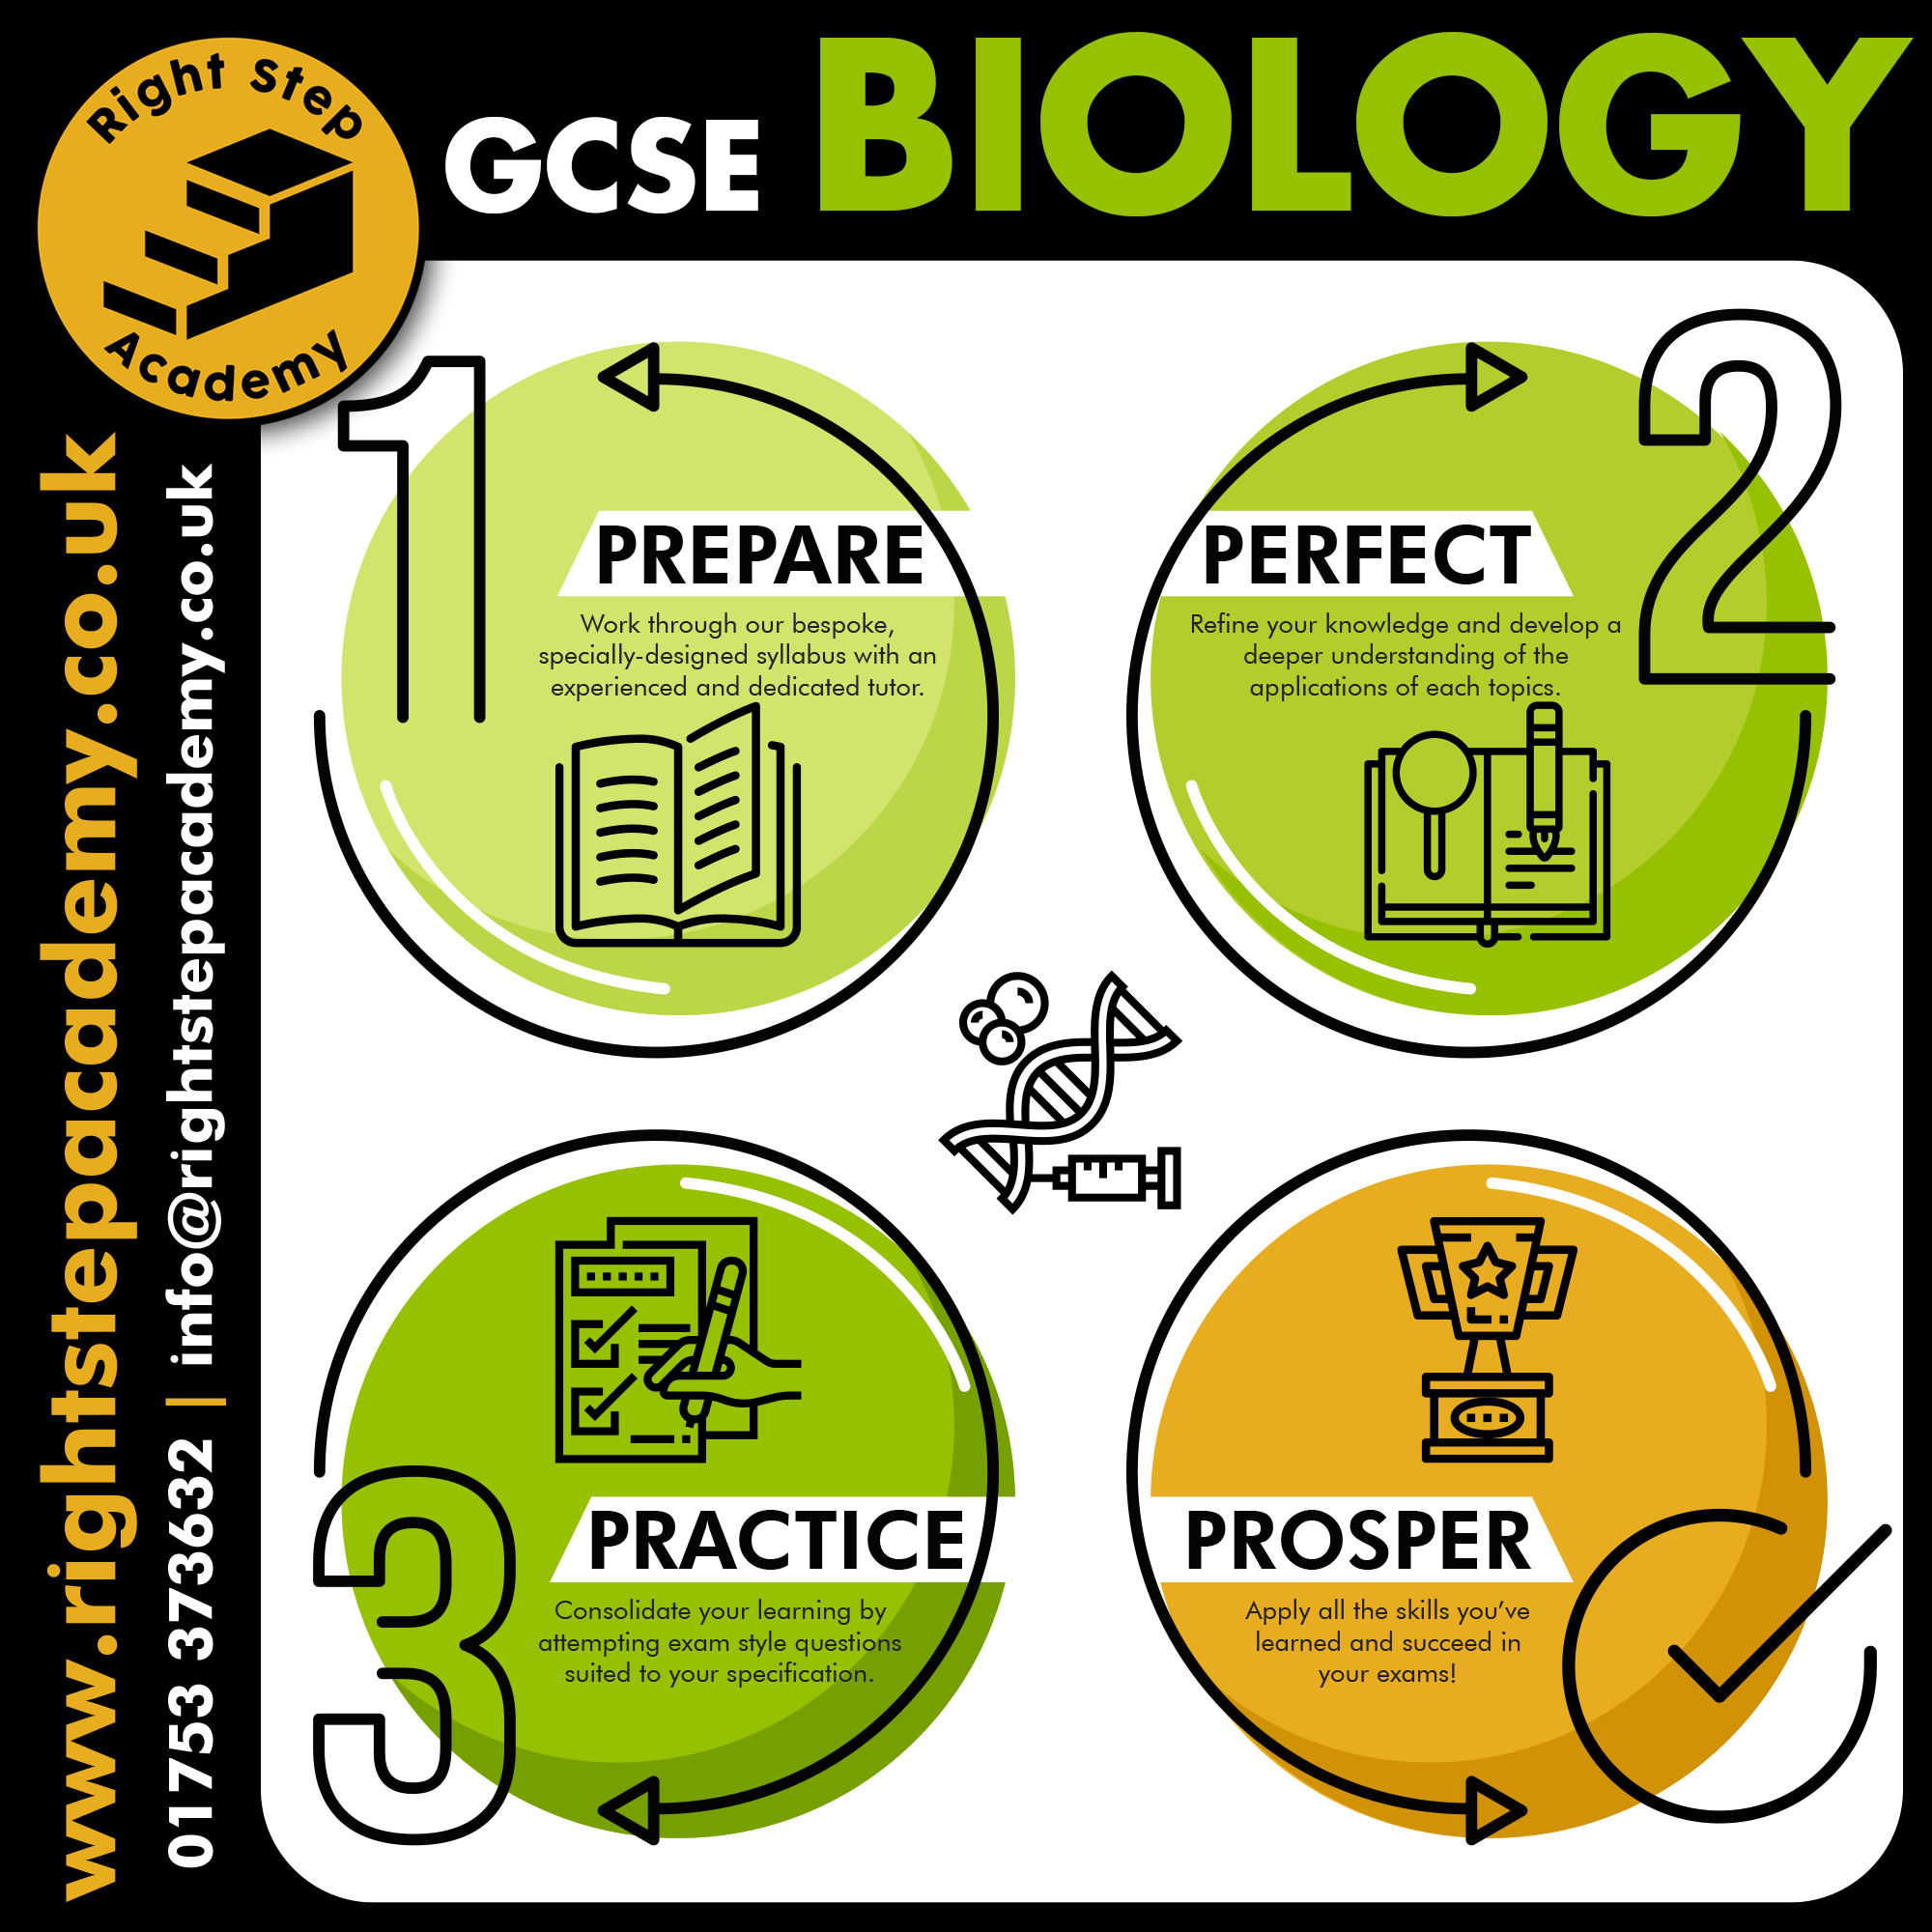 Our Process - At Right Step Academy, we follow a simple 3-step process forGCSE Biology tuition:1) All students work through our uniquely created Biology syllabus which covers each topic across the entire GCSE specification. Our course notes consist of six packs:• Cell Biology• Infection & Response• Bioenergetics• Homeostasis• Inheritance, Variation & Evolution• EcologyEach pack aims to establish the foundations for the topic covered in a very straightforward way, before building upon that knowledge towards the more complex, higher-level concepts.By working through the packs in this manner, we are able to ensure that the course of study is accessible, as well as personalised, for each student.2) The student revisits each individual topic using the exam board issued specification, textbooks and other learning material to fill in any gaps in their knowledge.3) To consolidate their learning and prepare for the examinations themselves, students will work through our extensive question bank, curated by our specialist content developers. With this regular question practice under timed conditions, as well as several mock assessment dates scheduled throughout the year, students will become thoroughly primed for success in their exam.